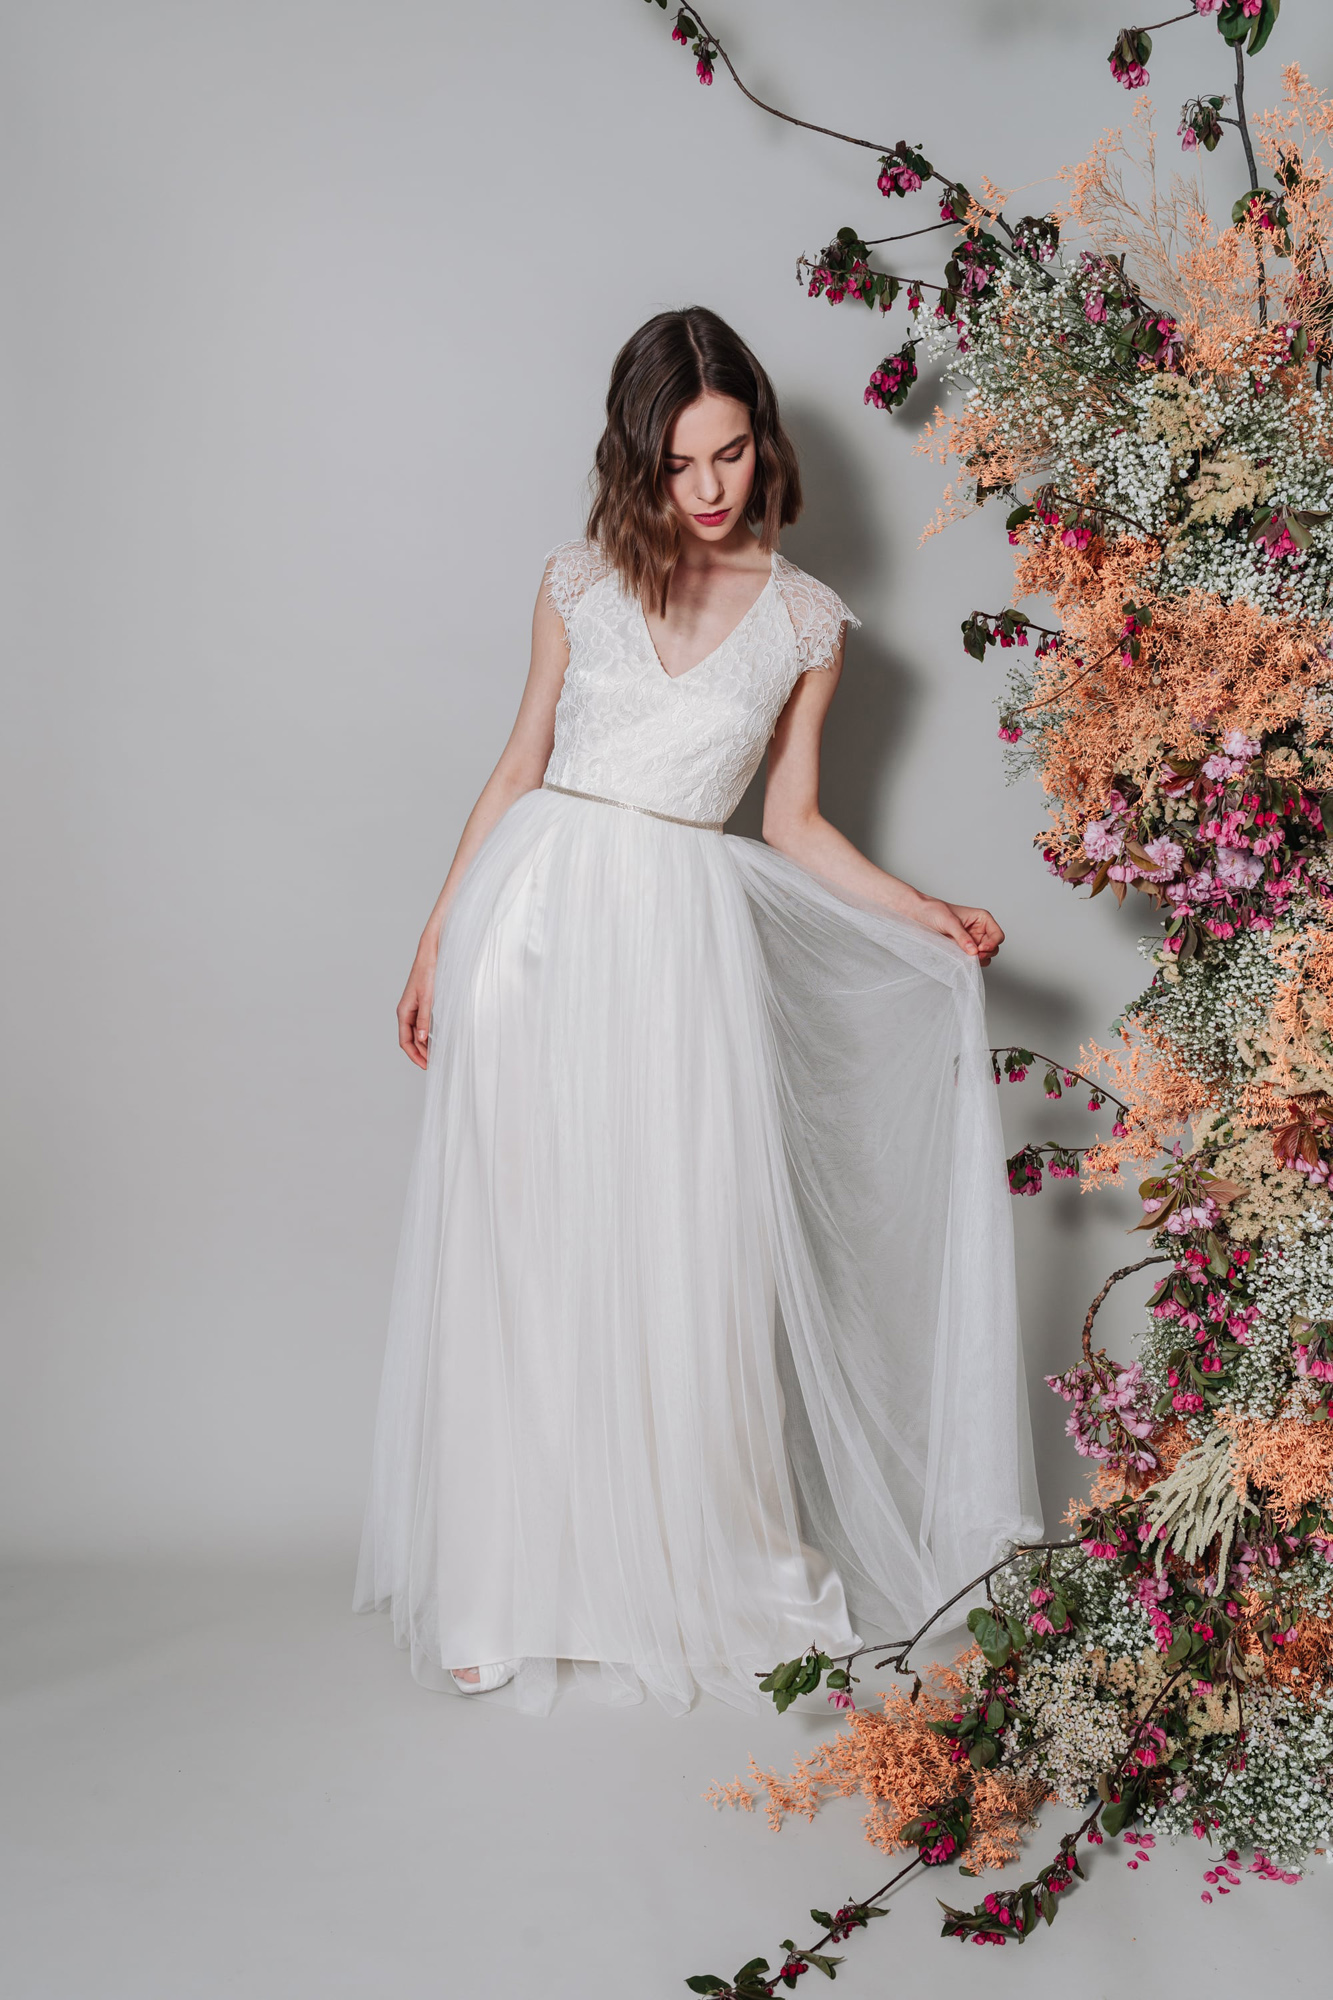 Kate-Beaumont-Sheffield-Mimosa-Lace-Tulle-Bohemian-Wedding-Gown-9.jpg